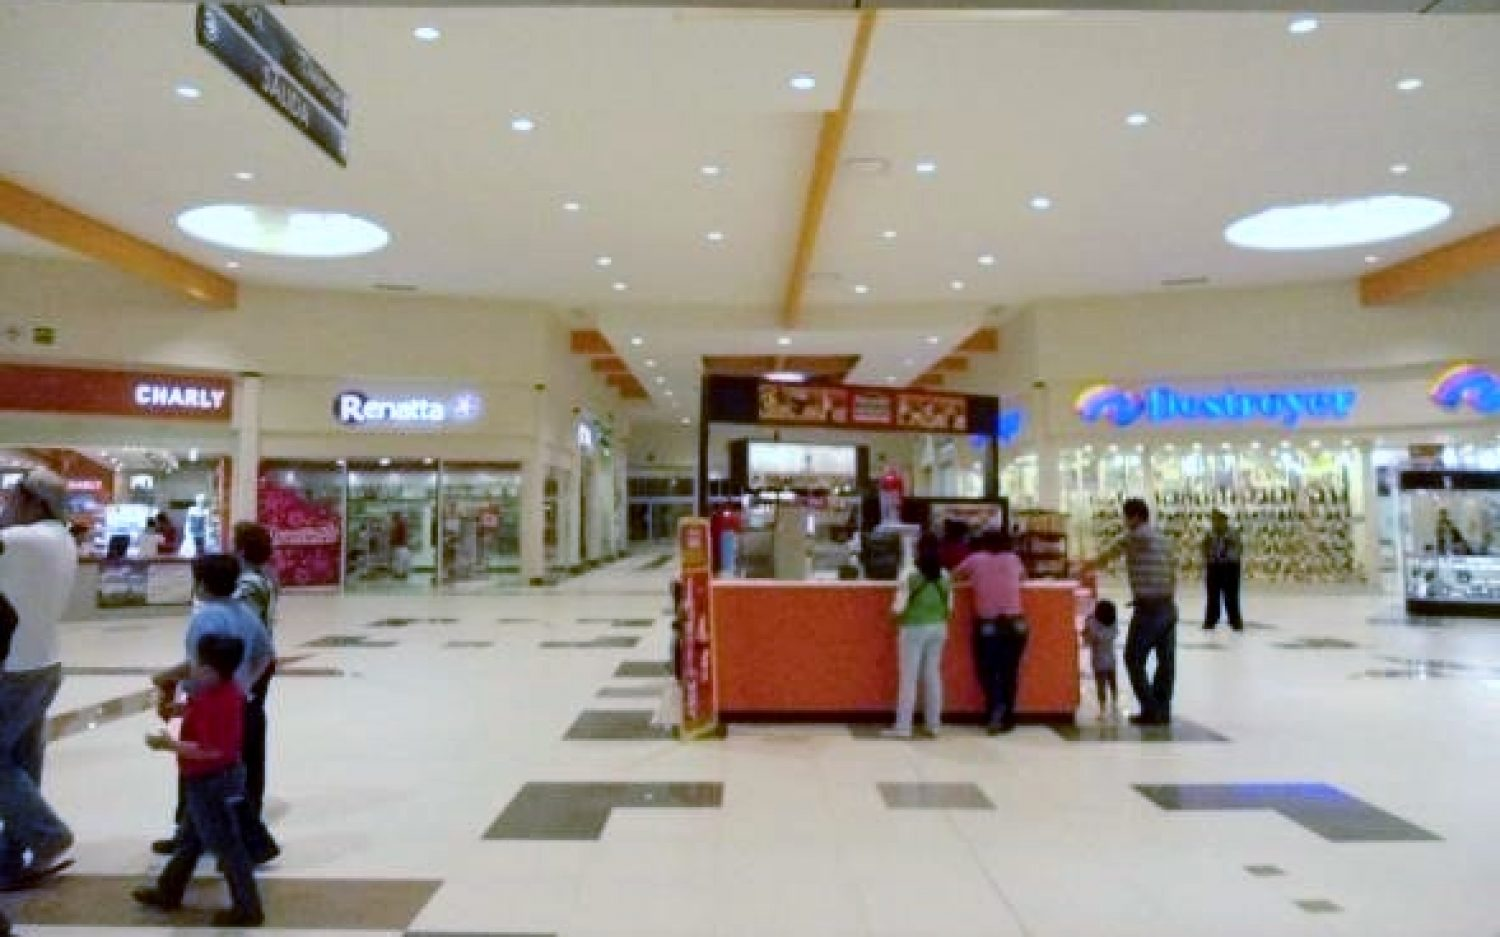 Co-Plaza Sendero Villahermosa (46)